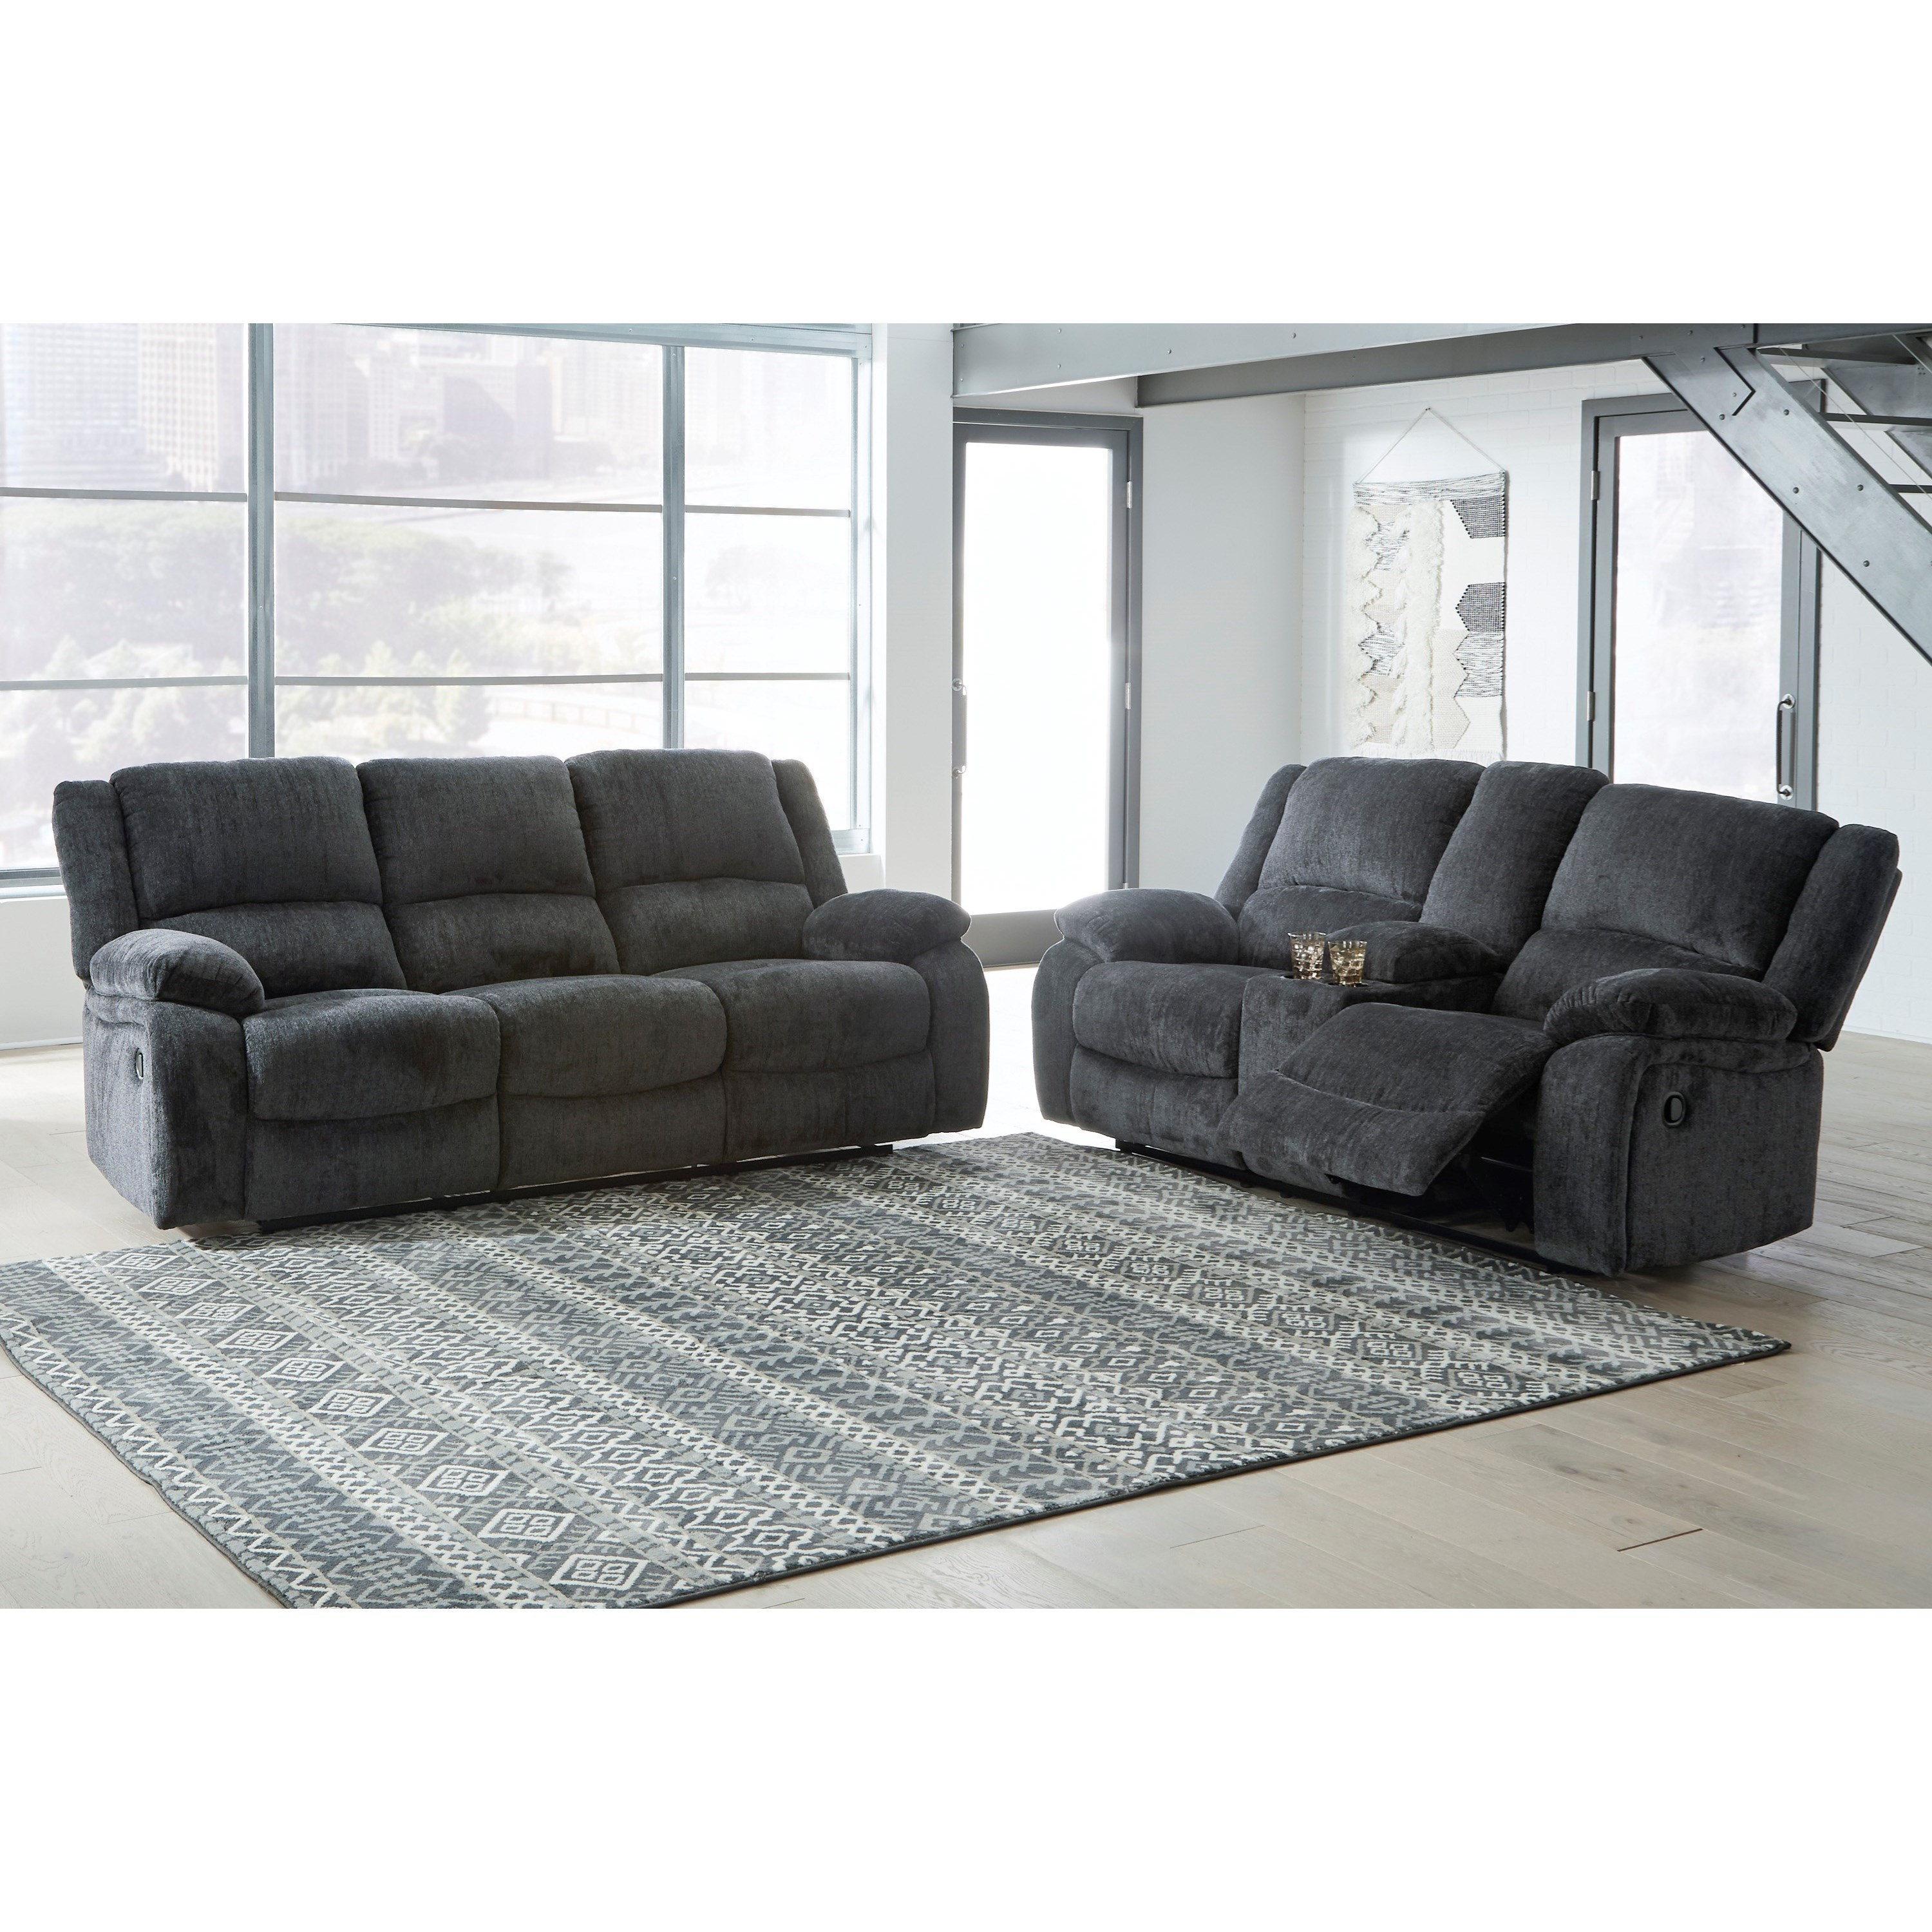 Draycoll Reclining Living Room Group by Benchcraft at Virginia Furniture Market